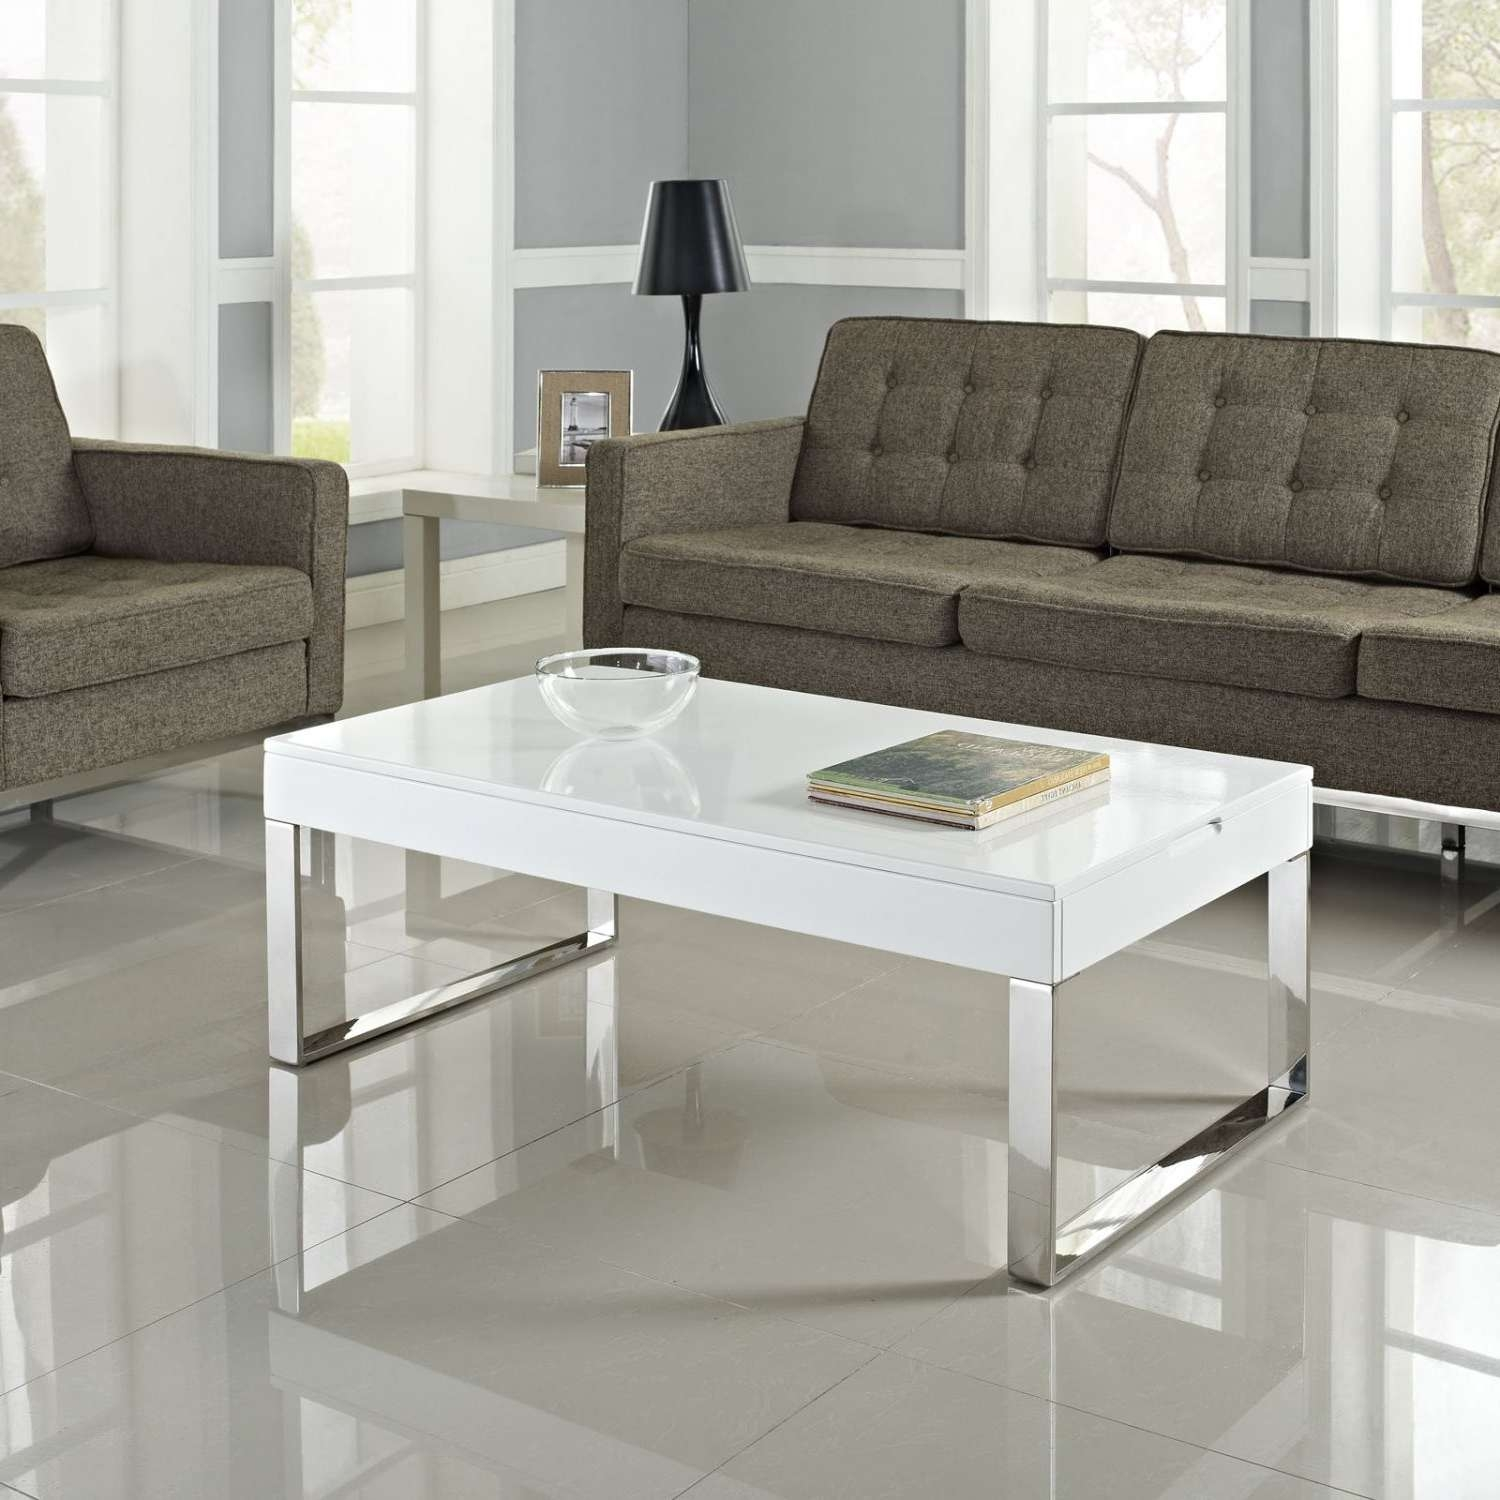 White Gloss Lift Coffee Table – All Furniture Usa In Latest White Gloss Coffee Tables (View 4 of 20)